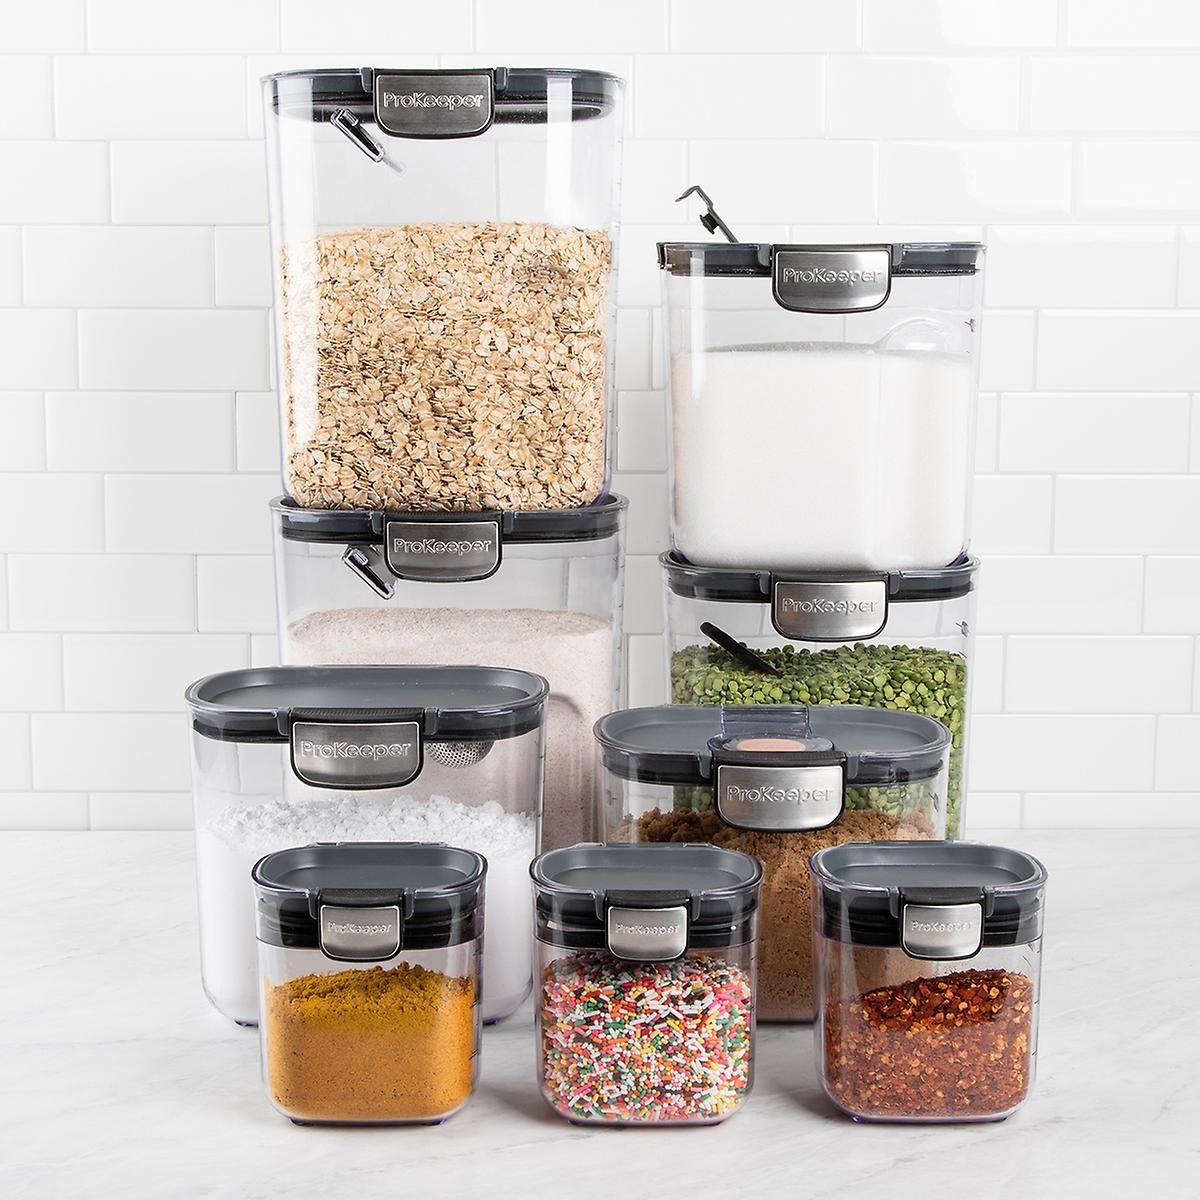 Organize your home with top picks from The Container Store's kitchen and pantry sale